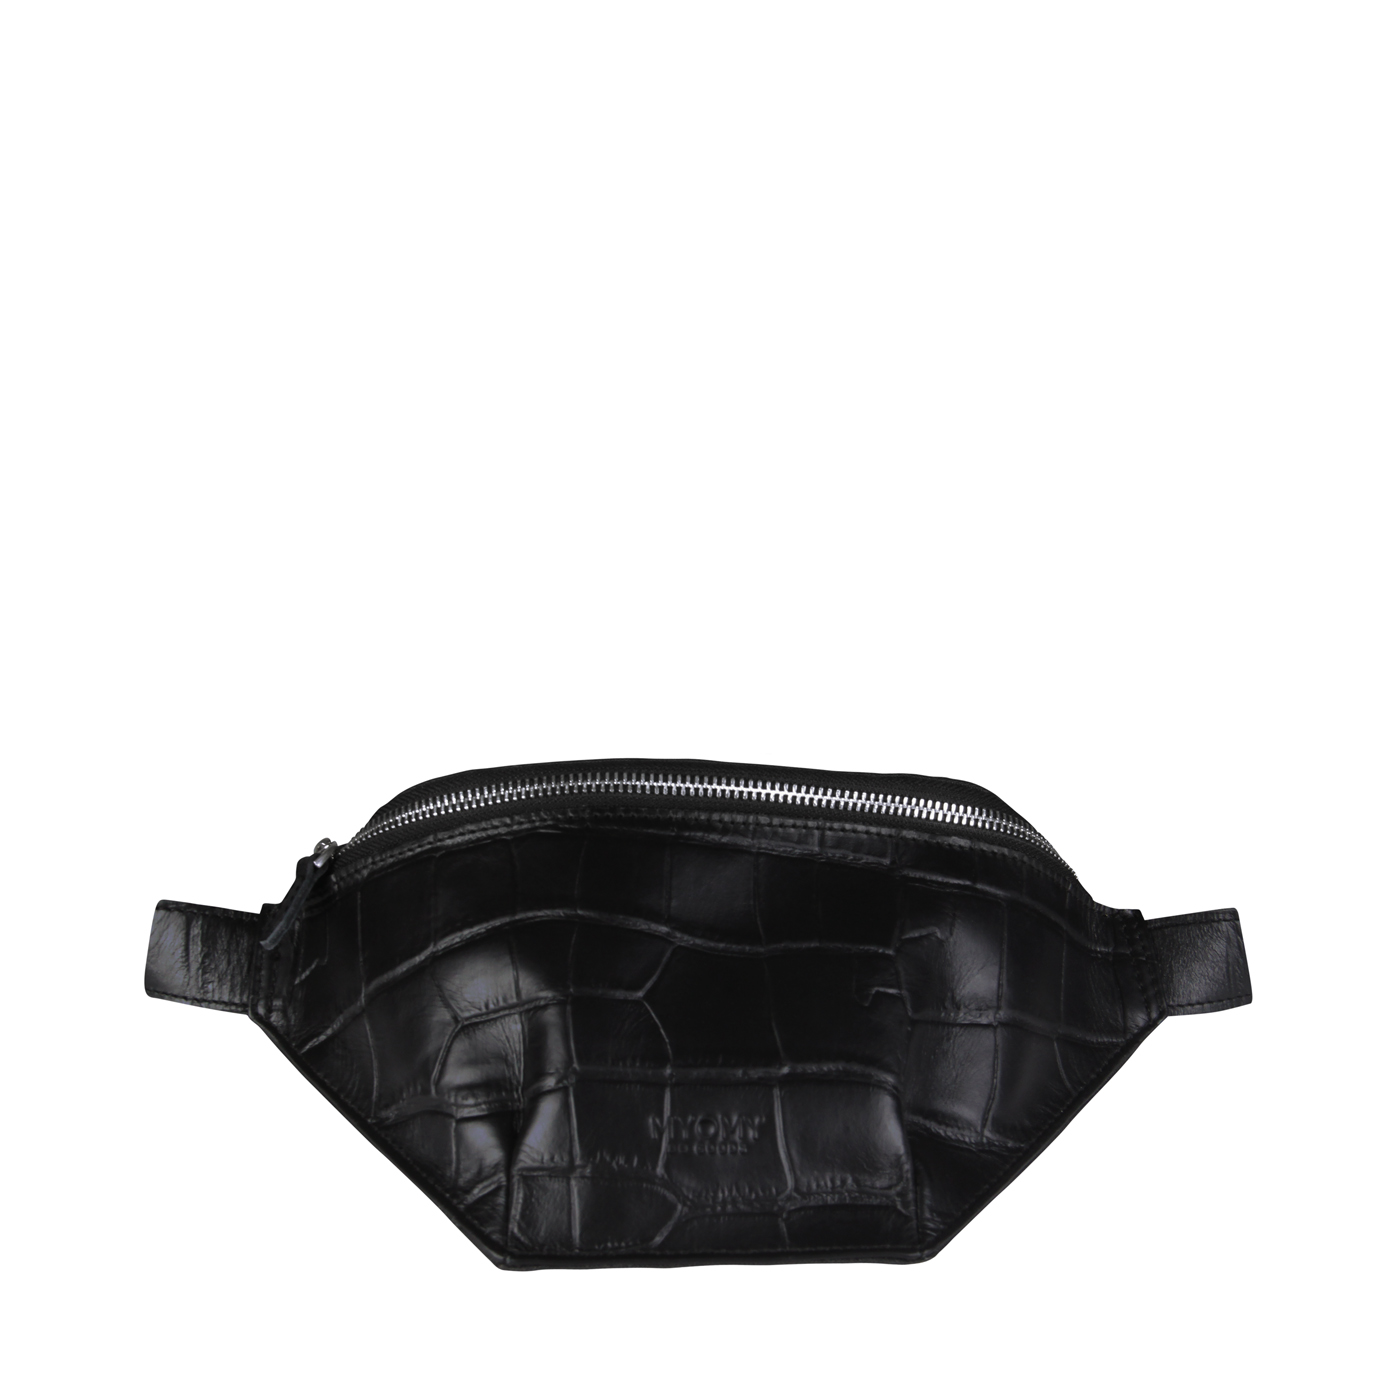 MY TREASURE BAG Waistbag - croco black & recycled plastic